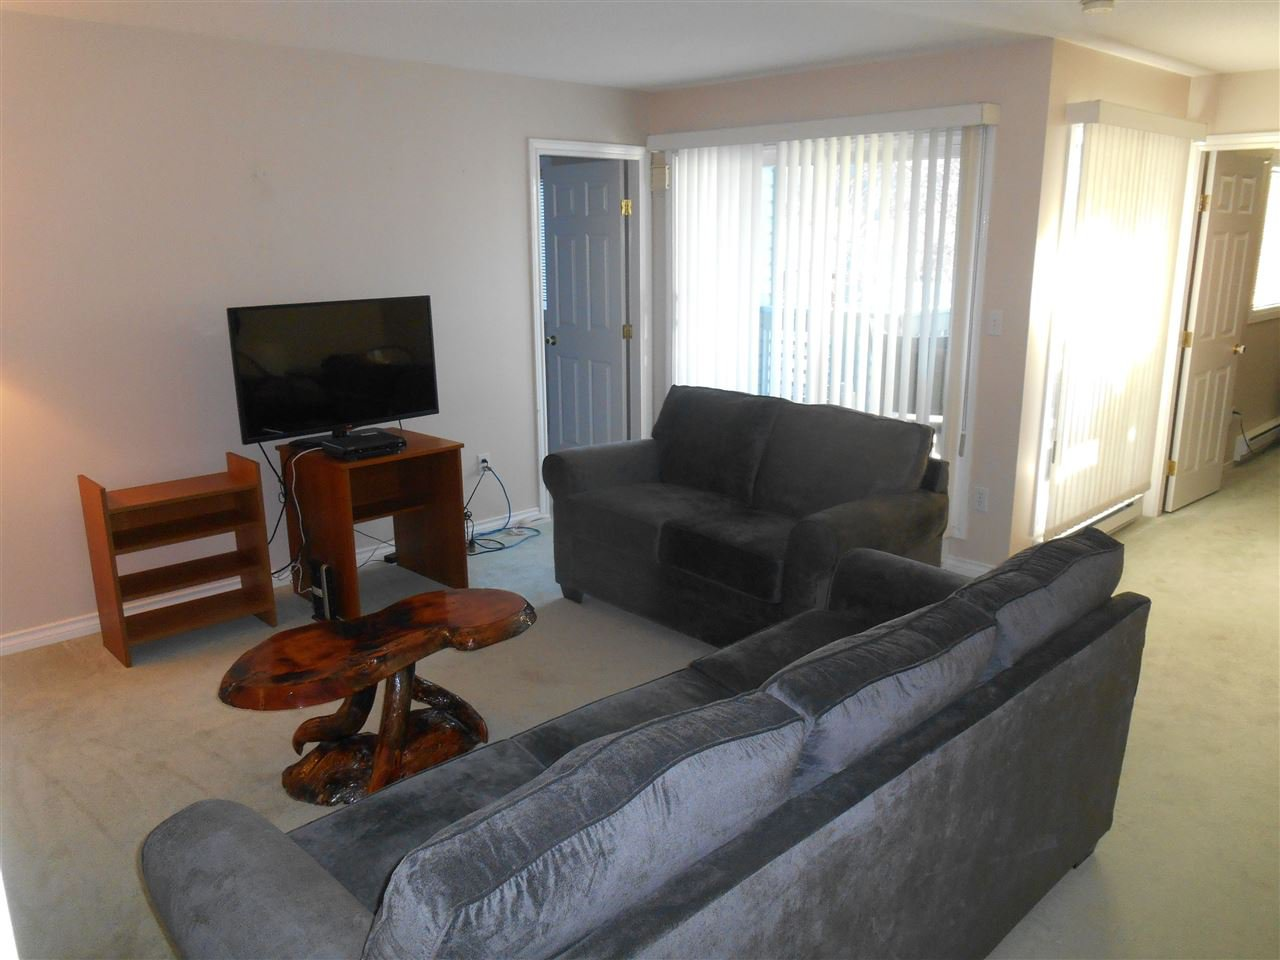 Photo 7: Photos: 321 3033 OSPIKA Boulevard in Prince George: Carter Light Condo for sale (PG City West (Zone 71))  : MLS®# R2137642